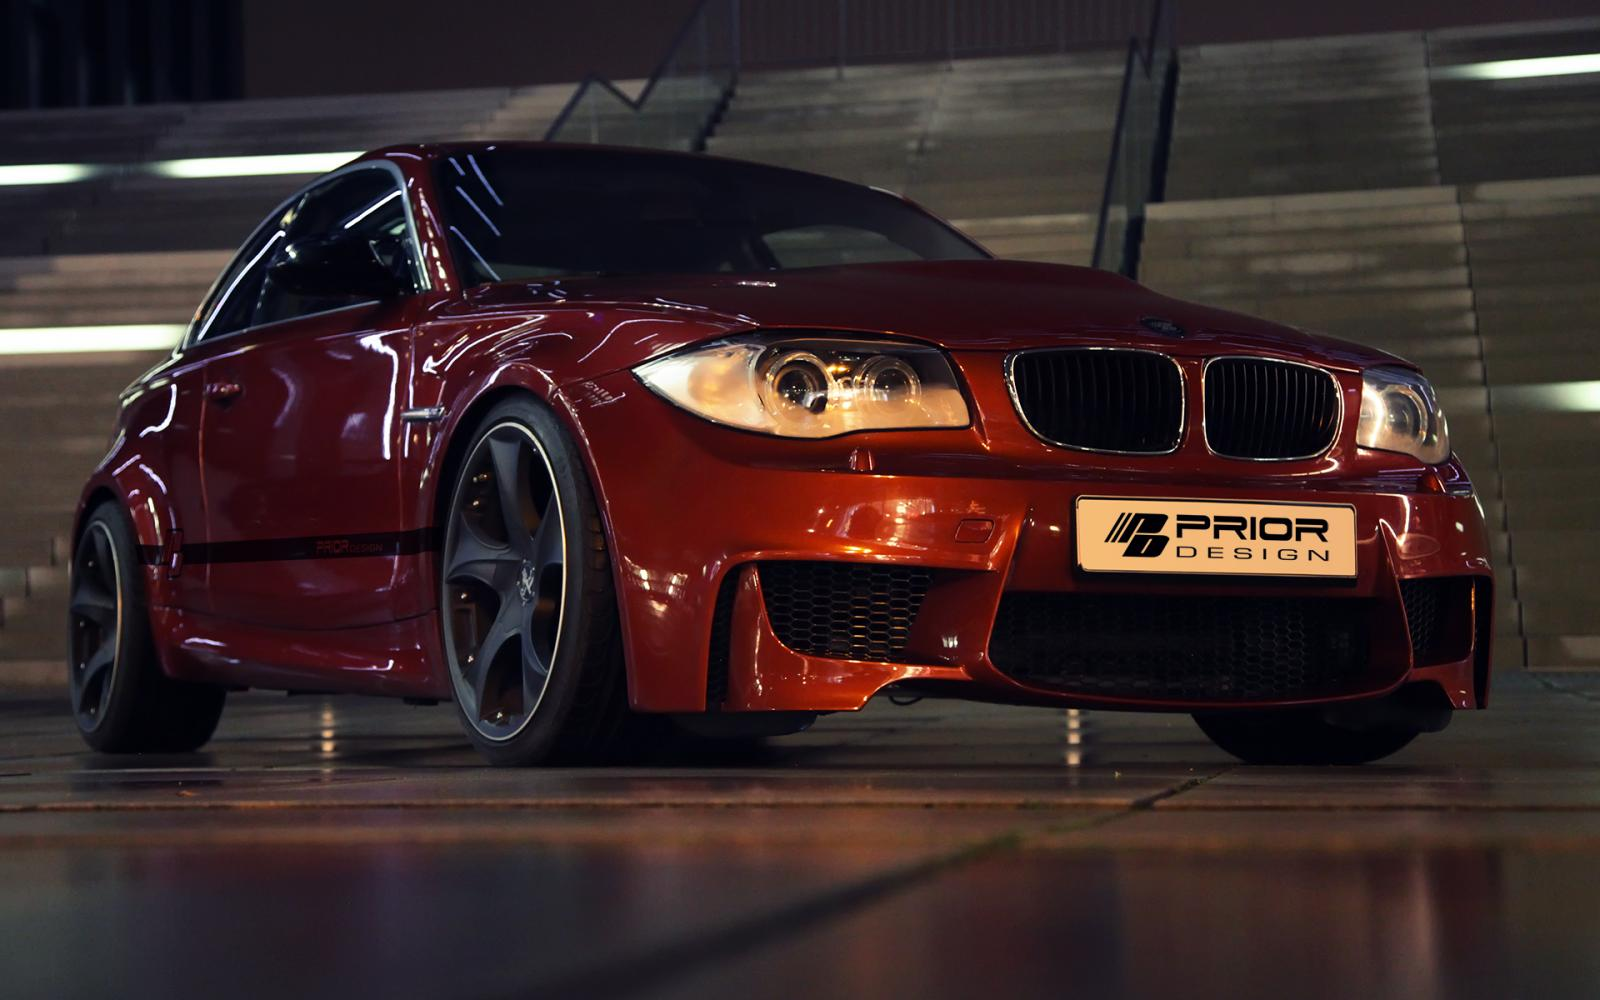 prior design showcases pdm1 kit for e82 bmw 1 series bmw car tuning. Black Bedroom Furniture Sets. Home Design Ideas